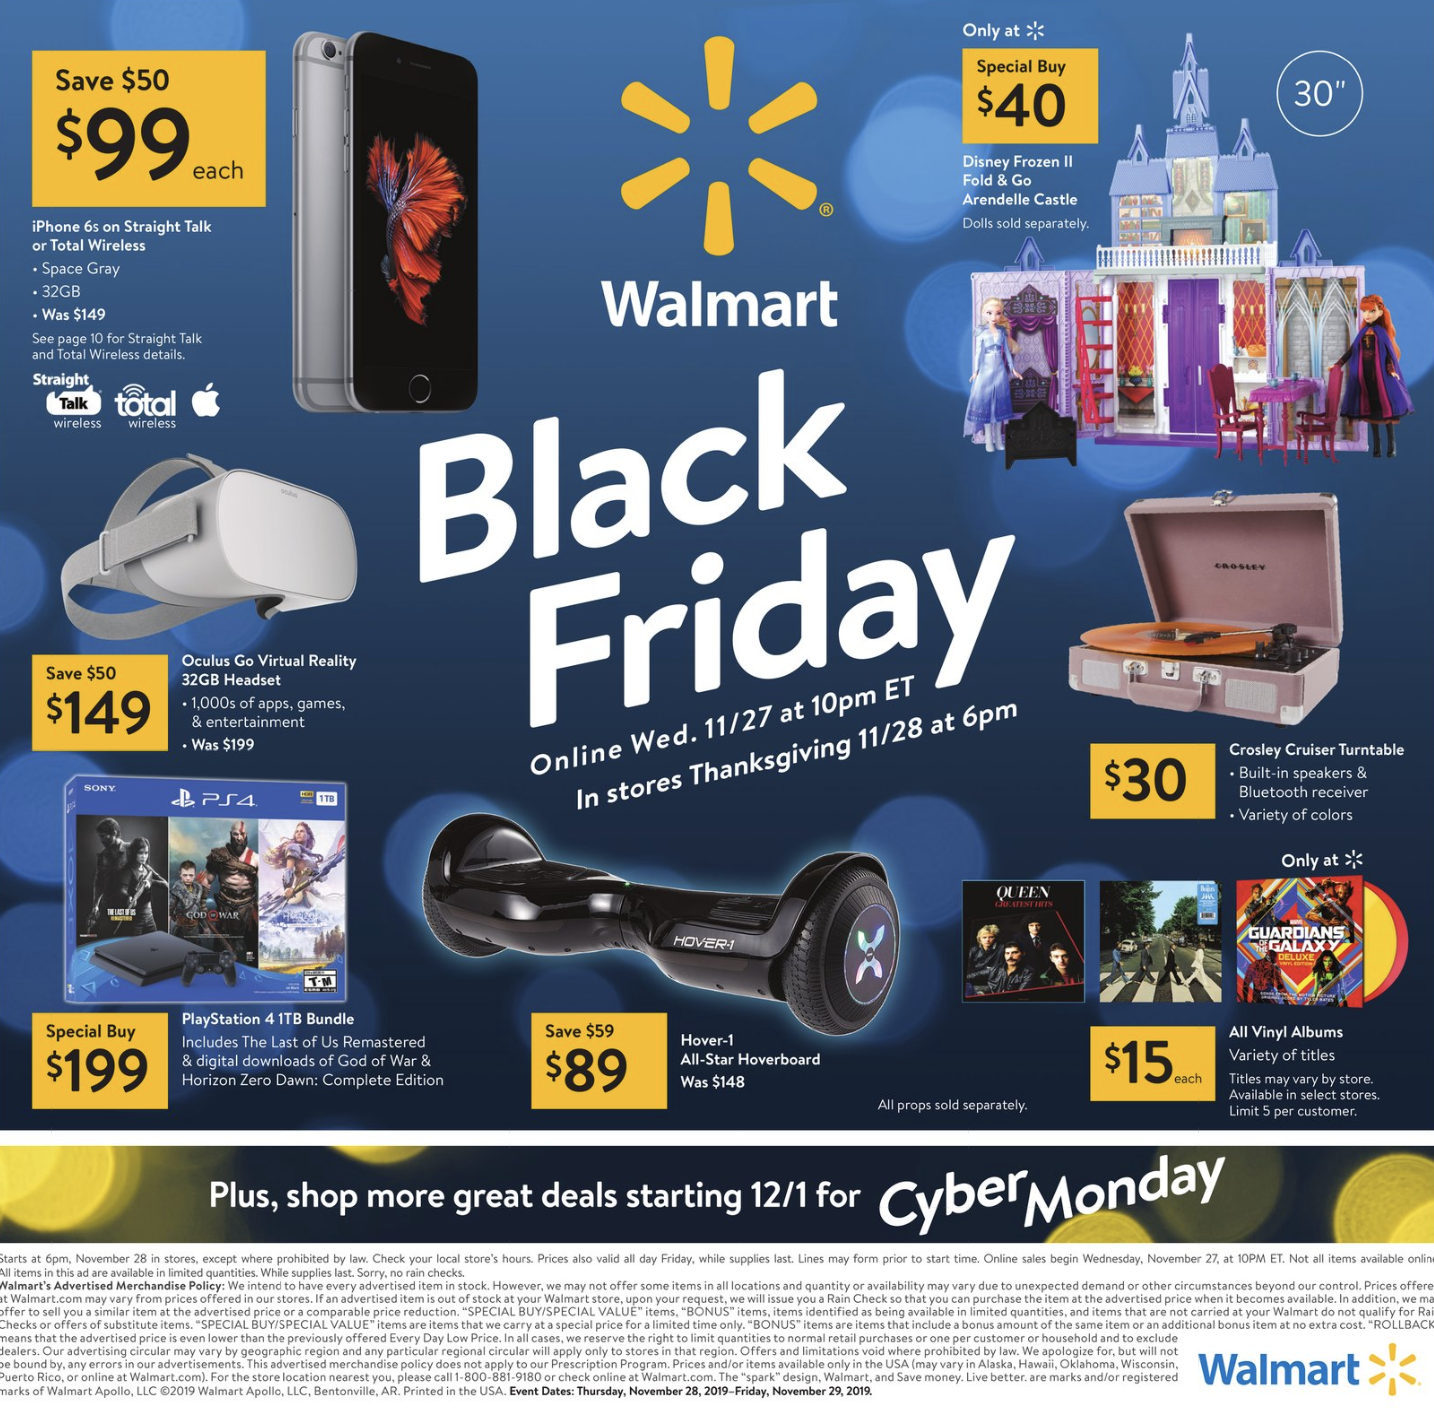 Walmart Black Friday Ad Reveals Notable Ipad Deals More 9to5toys